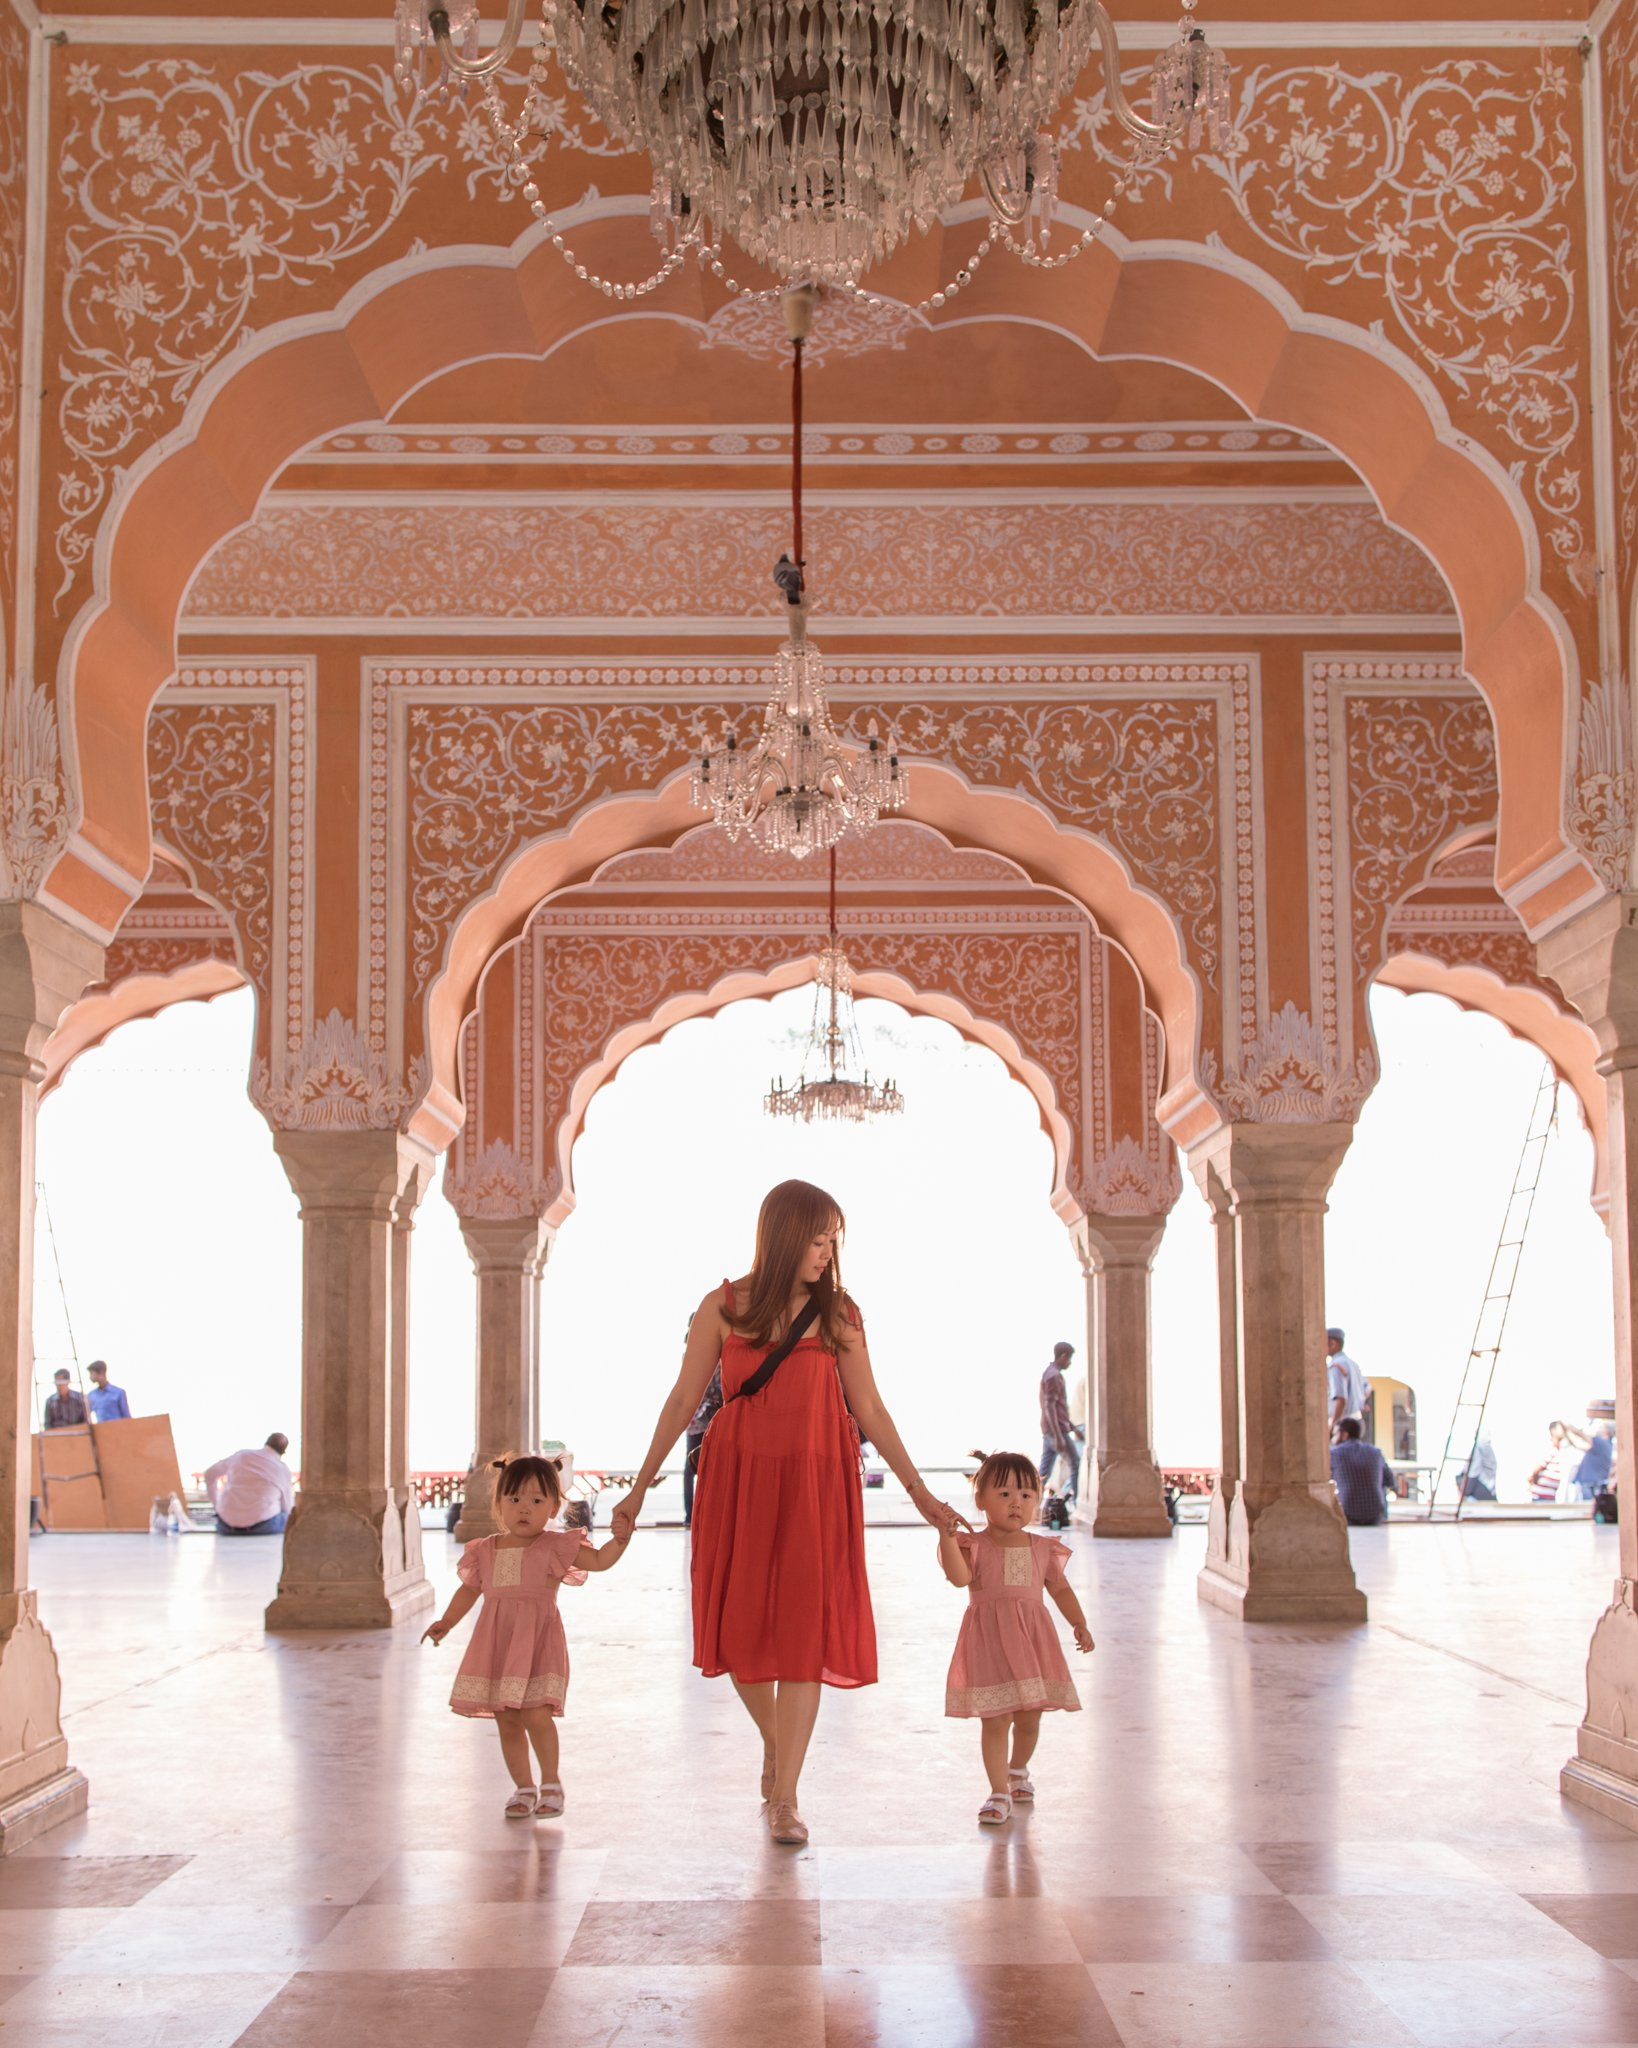 Entering the Diwan-i-Khas (Hall of Private Audience) in the middle of City Palace.